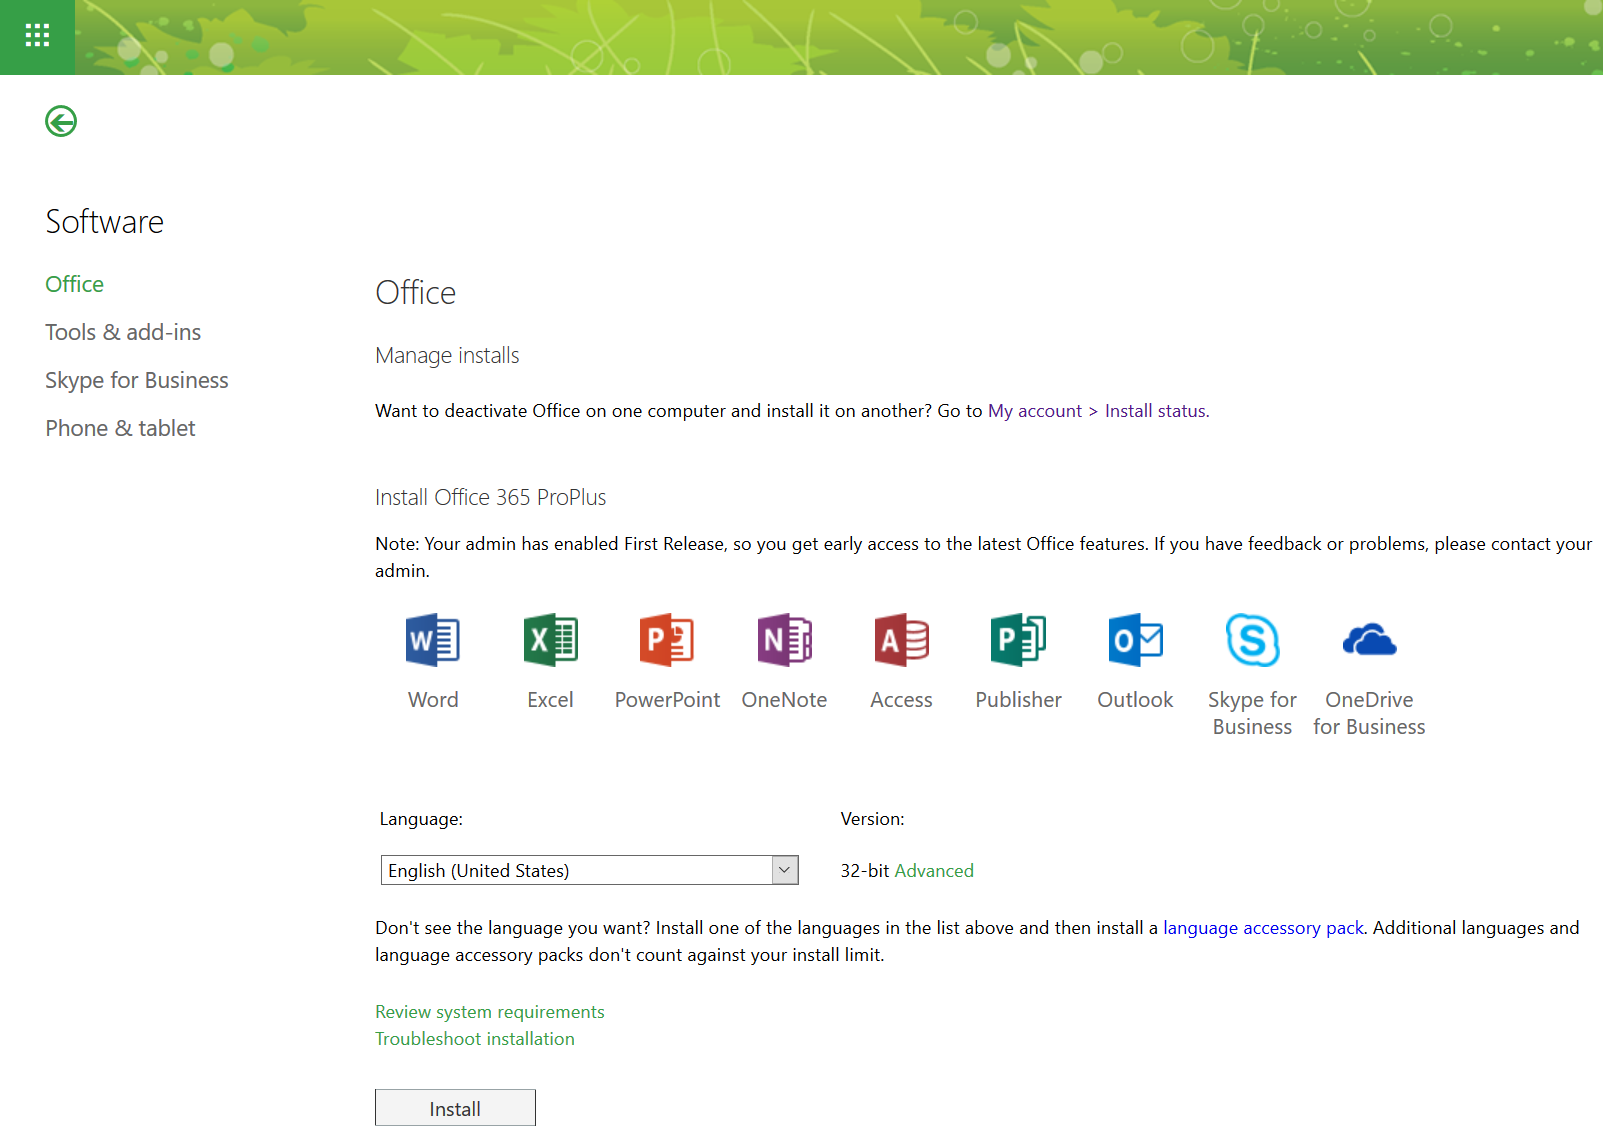 Office 365 and new Outlook simplified ribbon b4c4251a-dd0e-433b-a683-fd866336c64f?upload=true.png